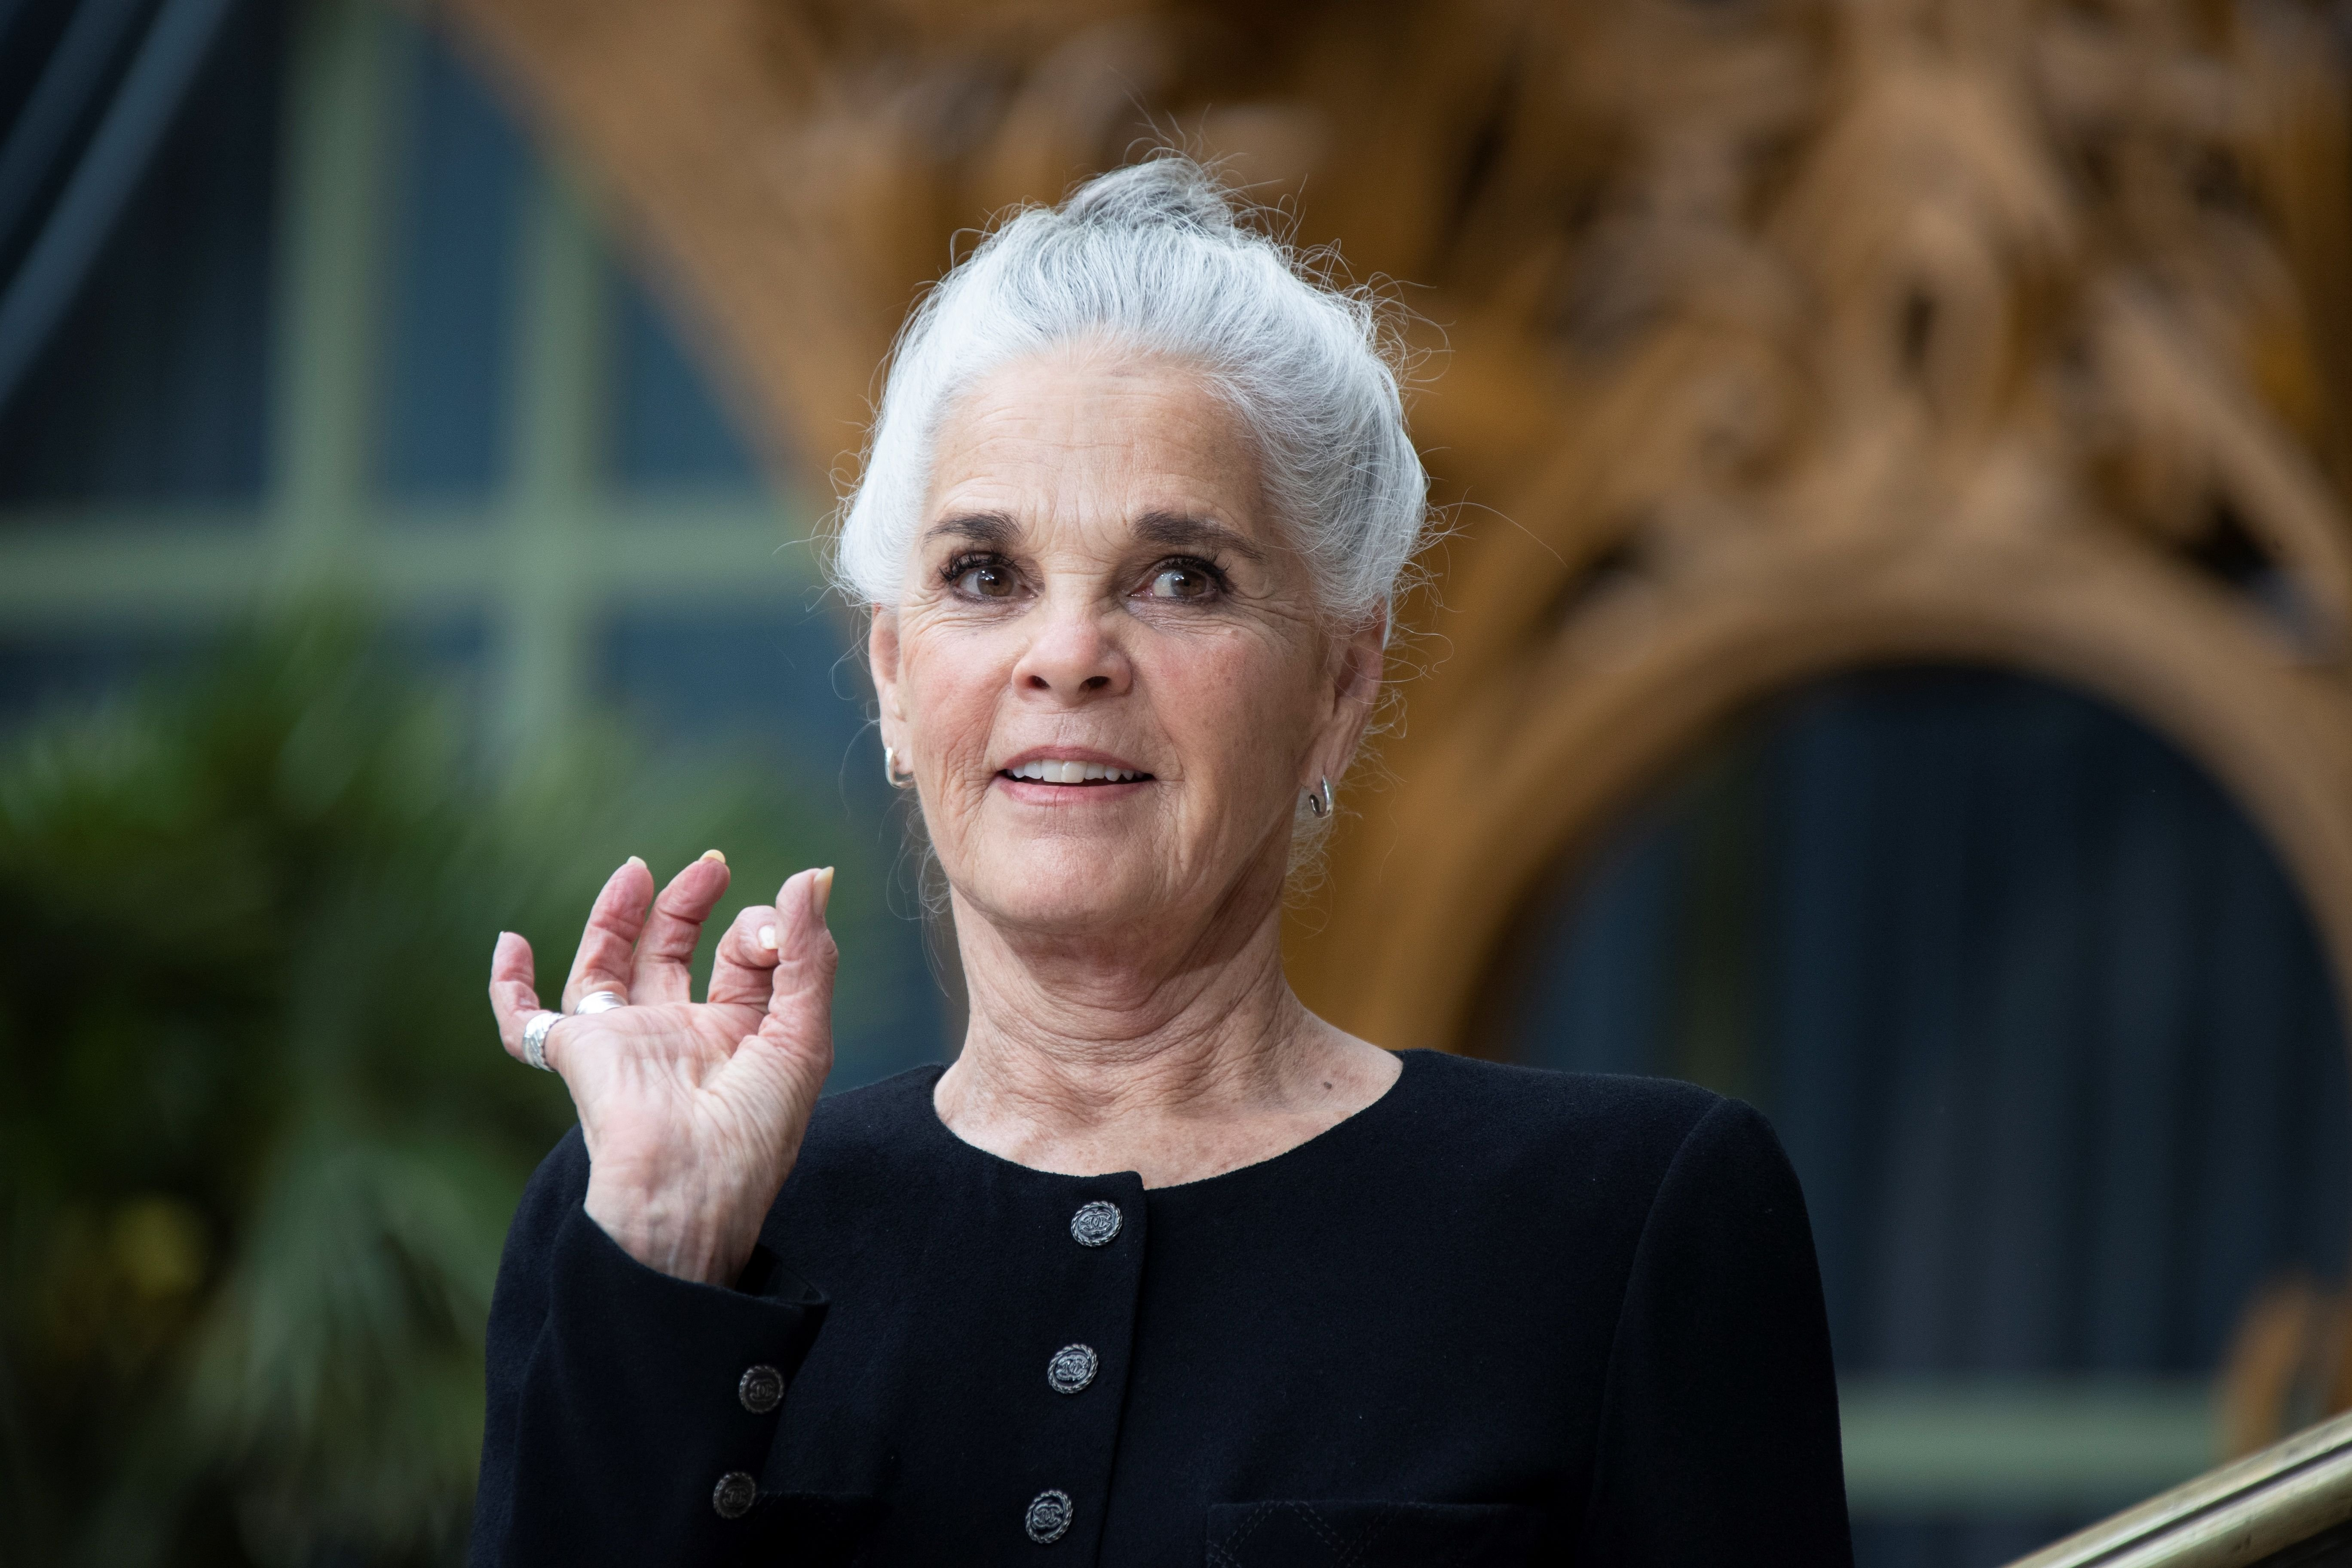 US actress Ali MacGraw poses during the photocall prior to the 2020 Chanel Croisiere (Cruise) fashion show at the Grand Palais in Paris on May 3, 2019.  Photo: Getty Images